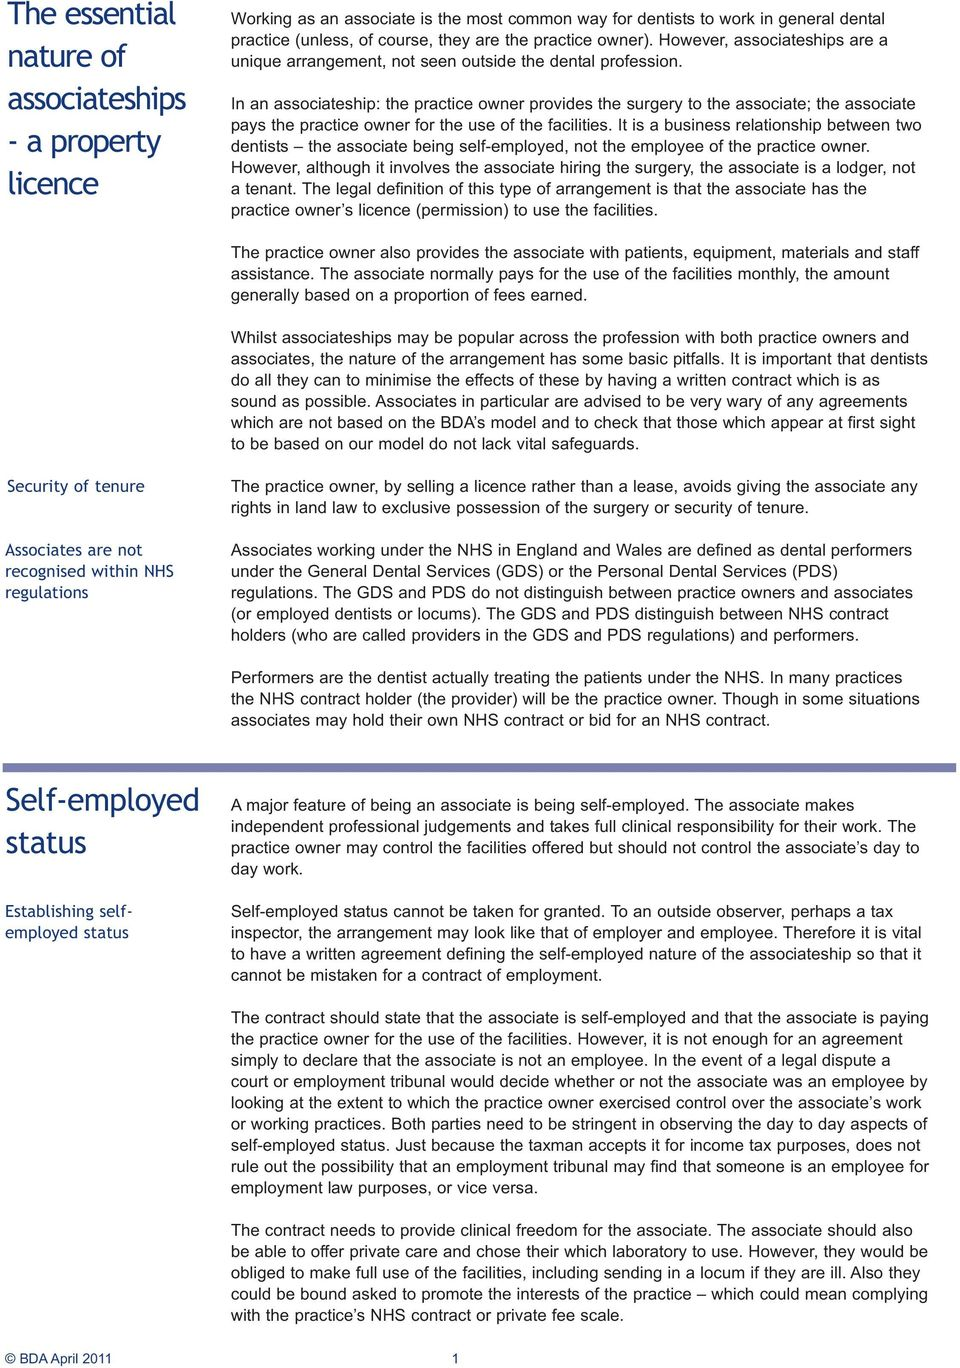 Advicesheet. Associate Contracts A17. - Performer agreements for NHS ...